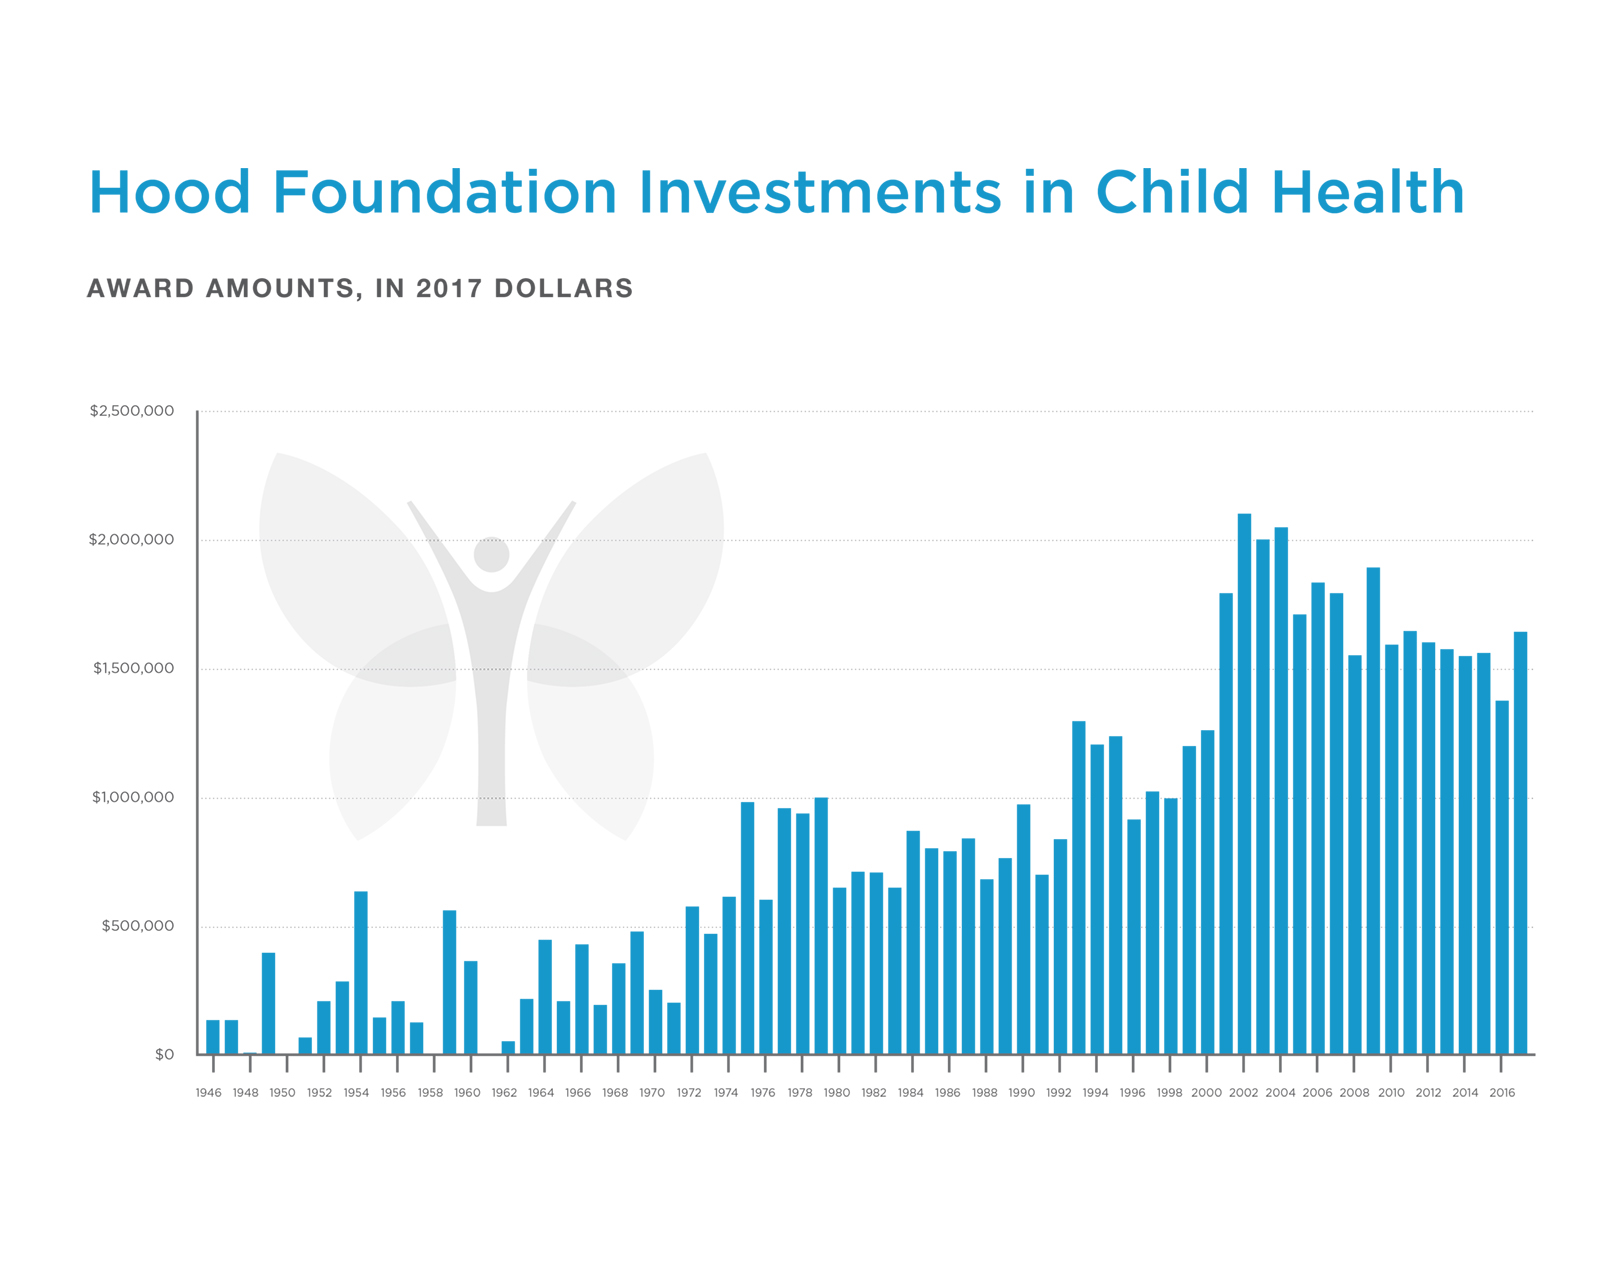 The Hood Foundation's Child Health Investment Graph from 1946 to 2017